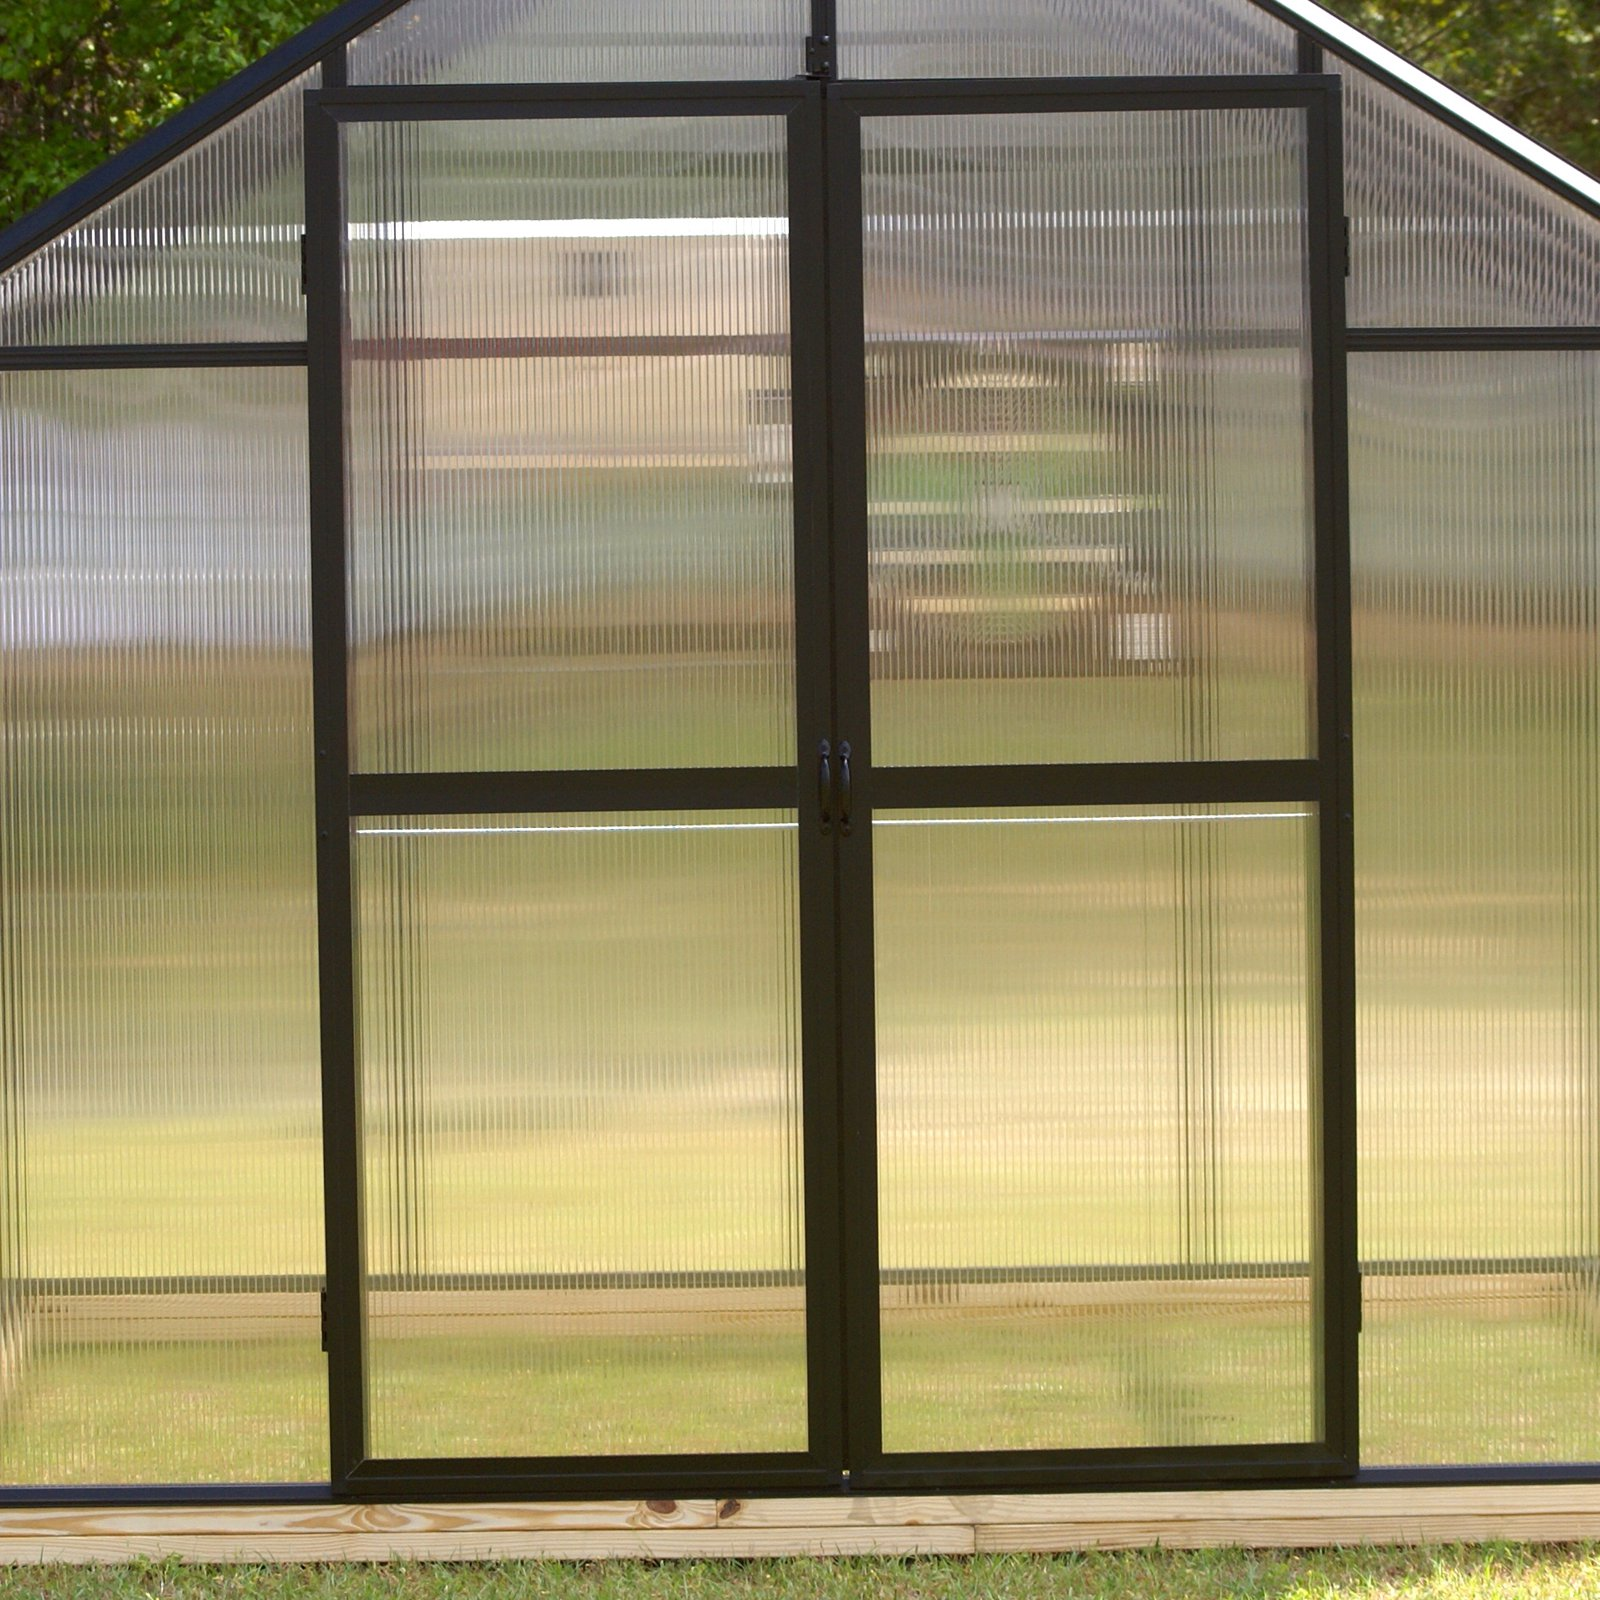 Riverstone Industries Monticello Hinged Greenhouse Doors by Riverstone Industries